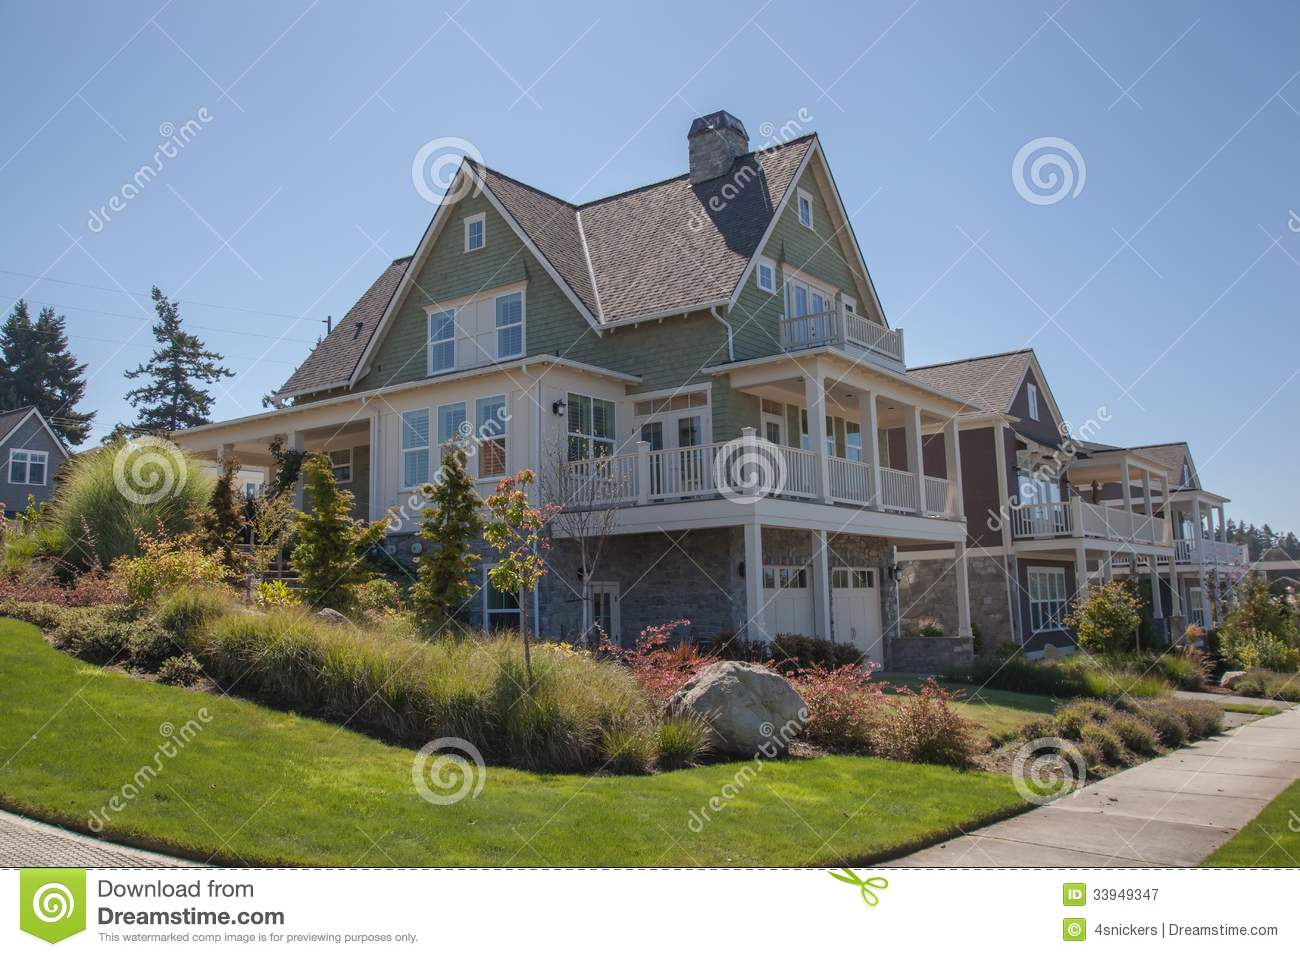 Vacation homes royalty free stock photography image for Americana homes